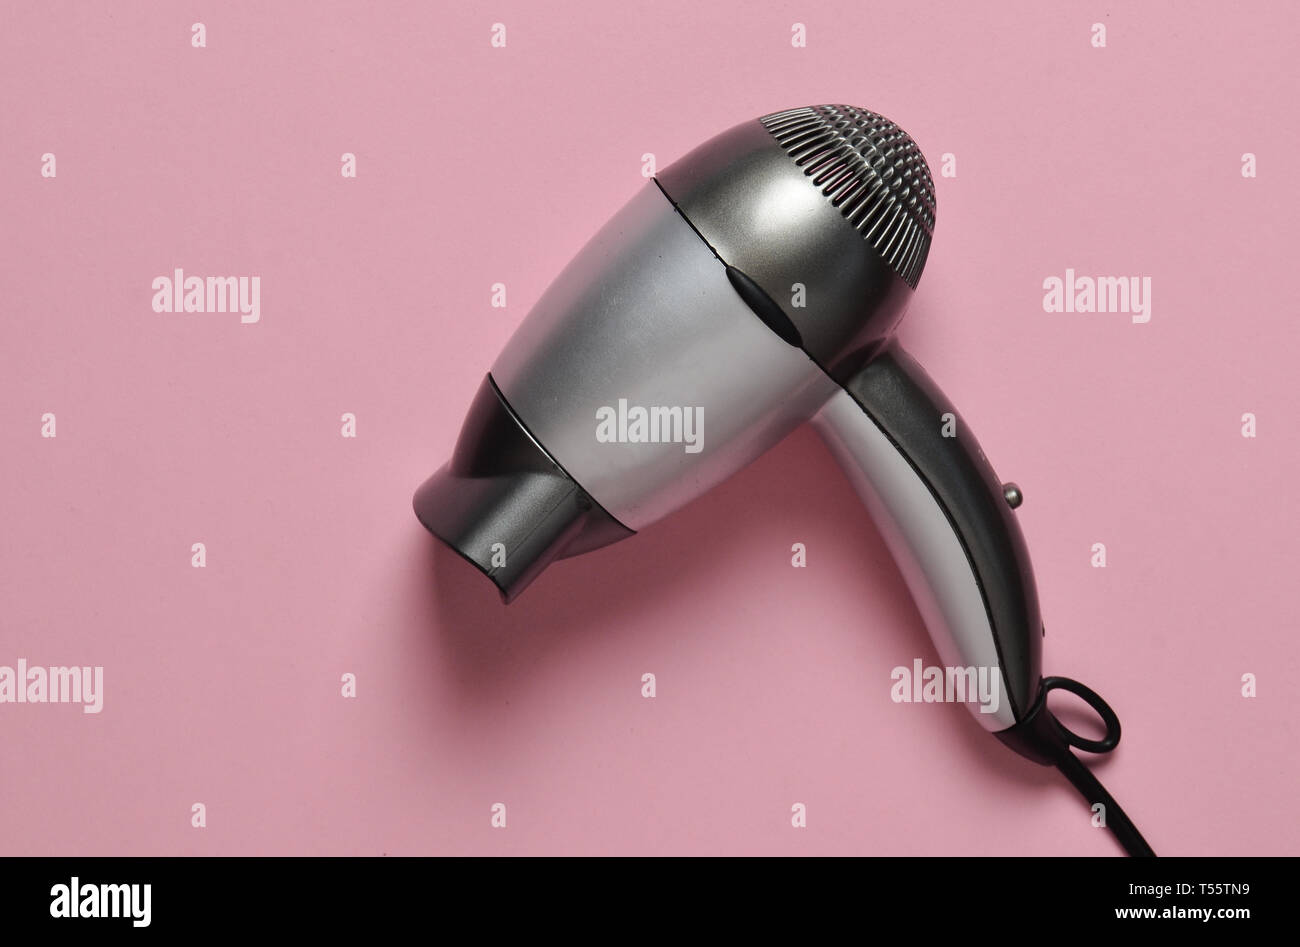 Gray plastic hair dryer on a pink pastel background. Hair care. - Stock Image